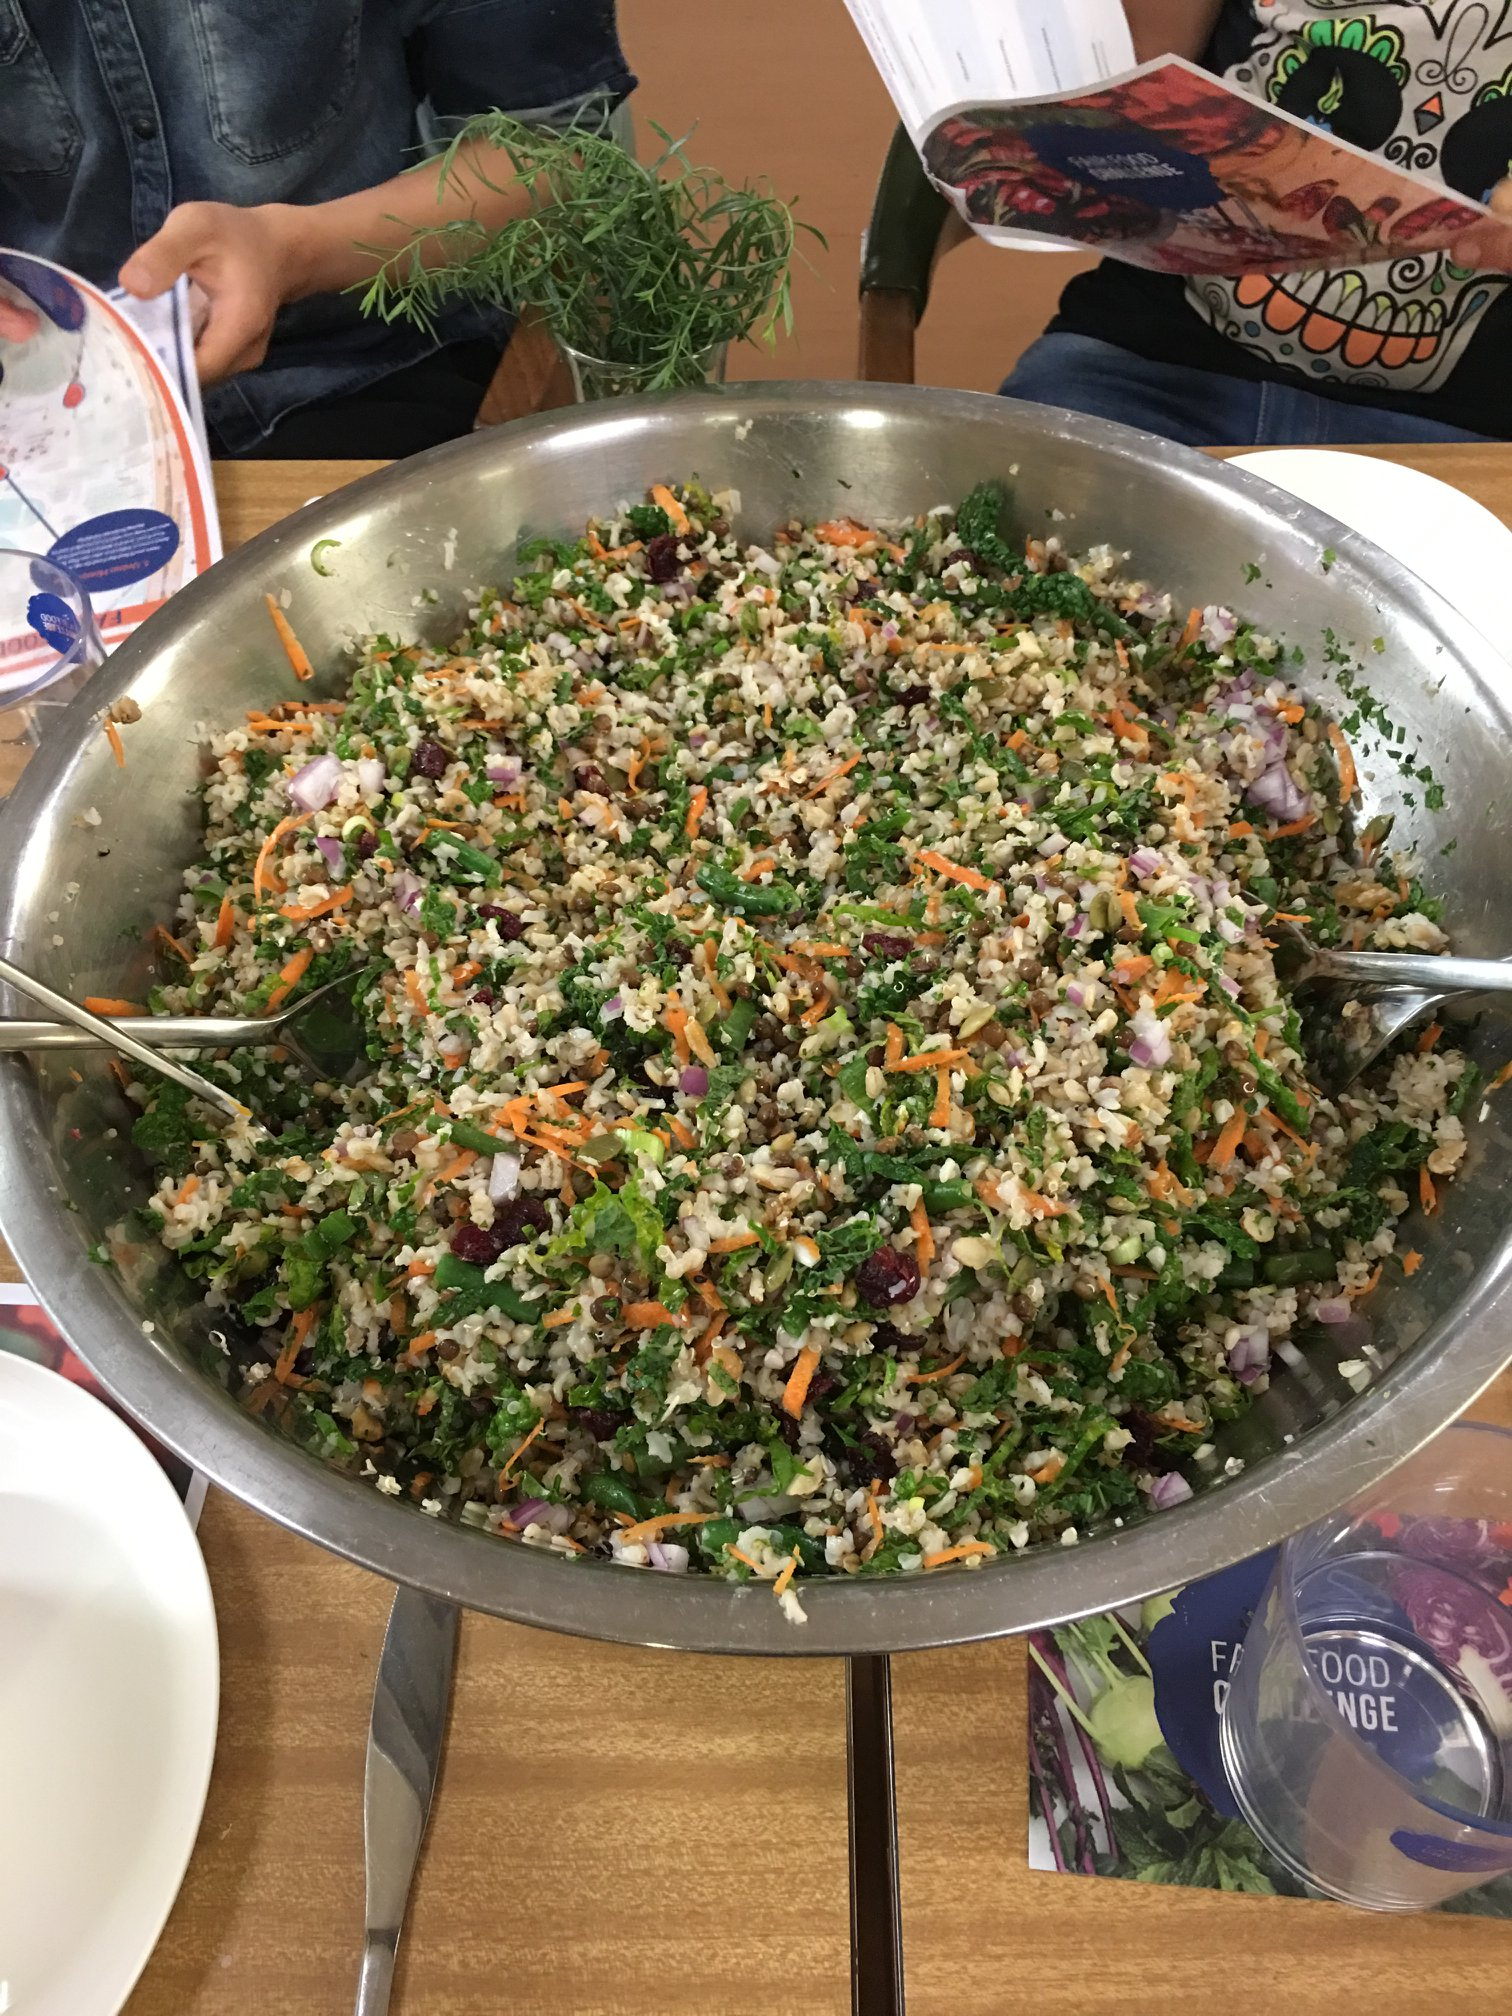 The final product: a colourful and large quantity of grain salad